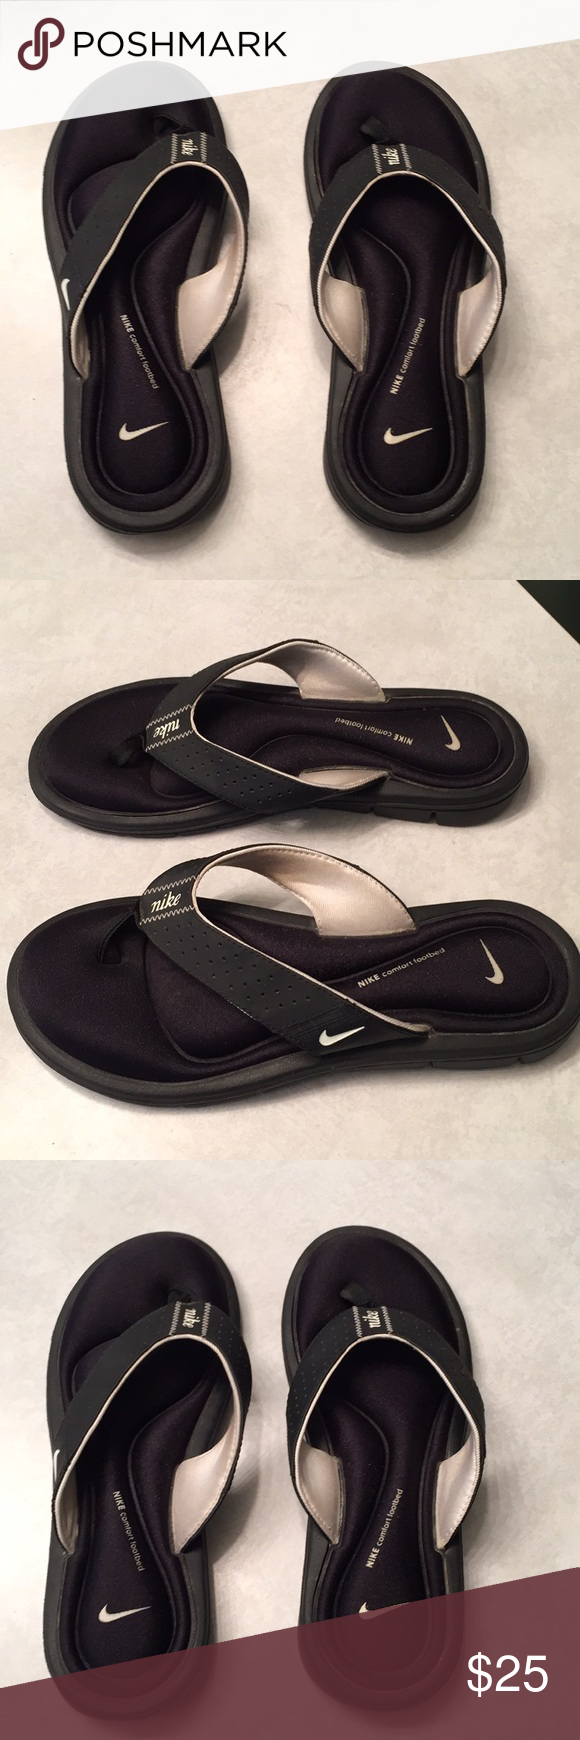 9ab419e2991c NIKE COMFORT BED FLIP FLOPS SIZE 7 EXCELLENT CONDITION SIZE WOMENS 7 COMES  FROM A SMOKE FREE HOME Nike Shoes Sandals